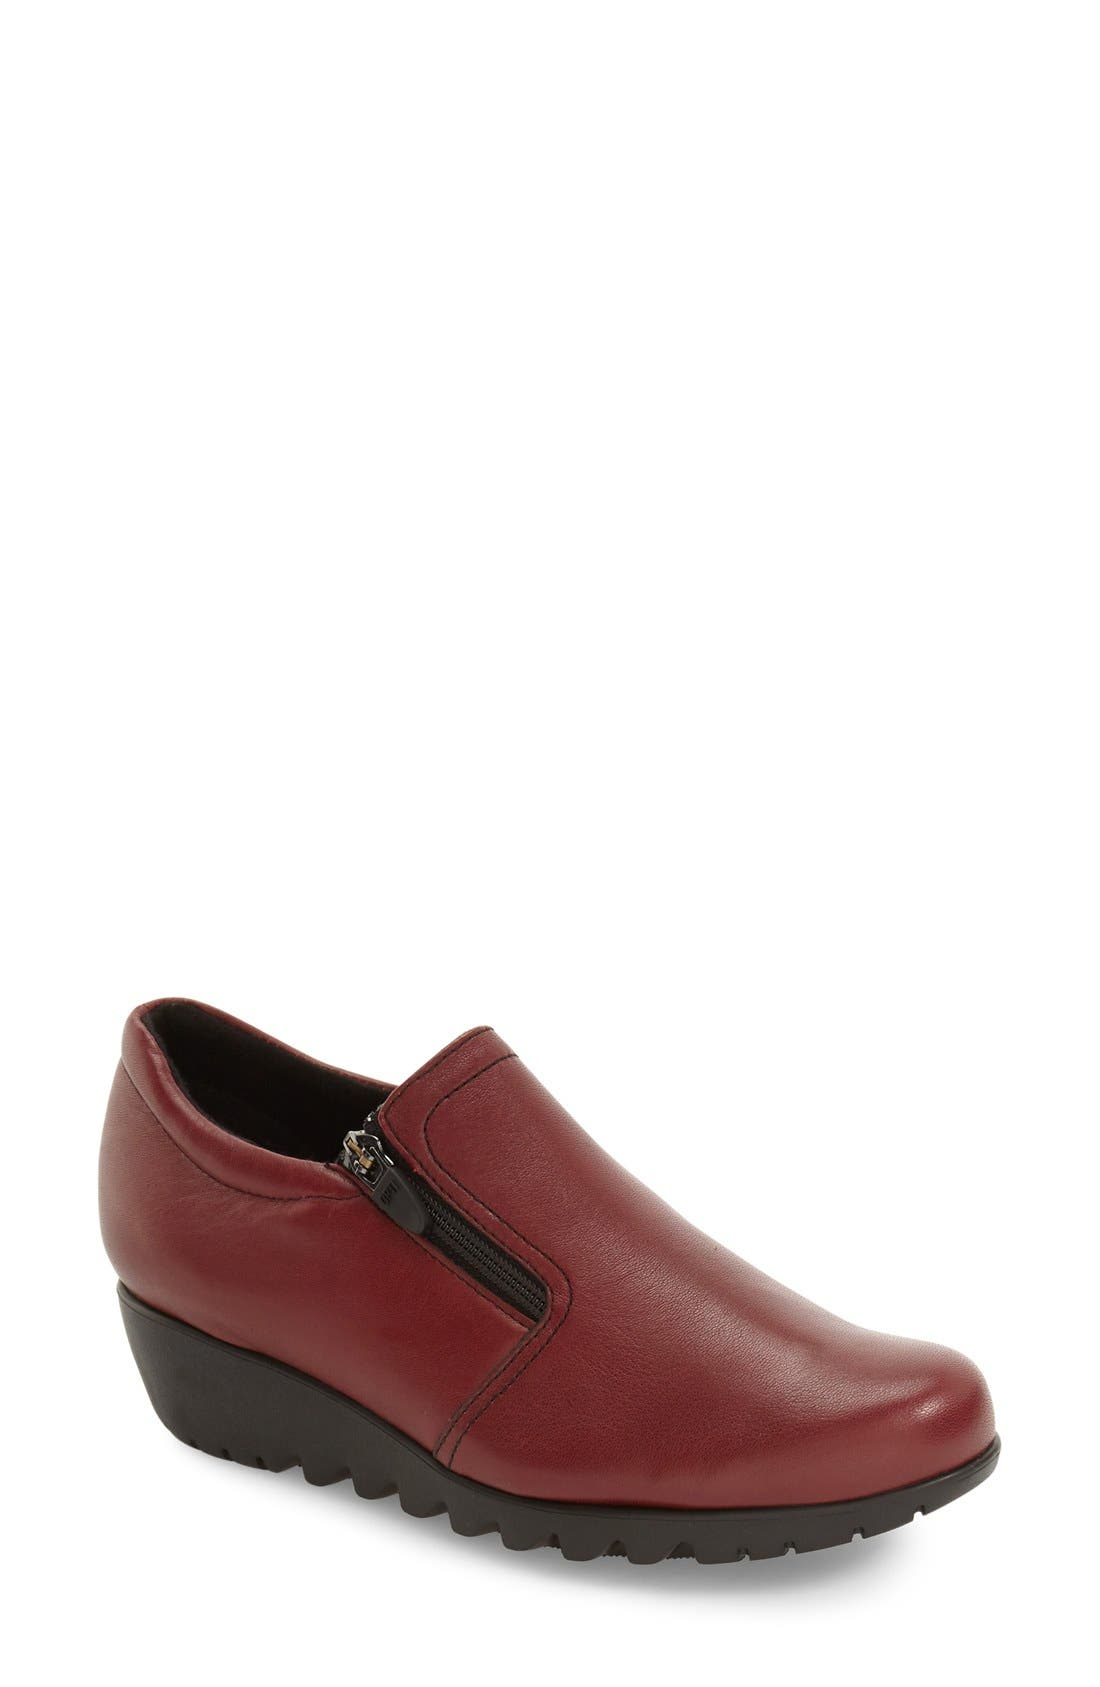 Munro Napoli Zip Bootie- Red